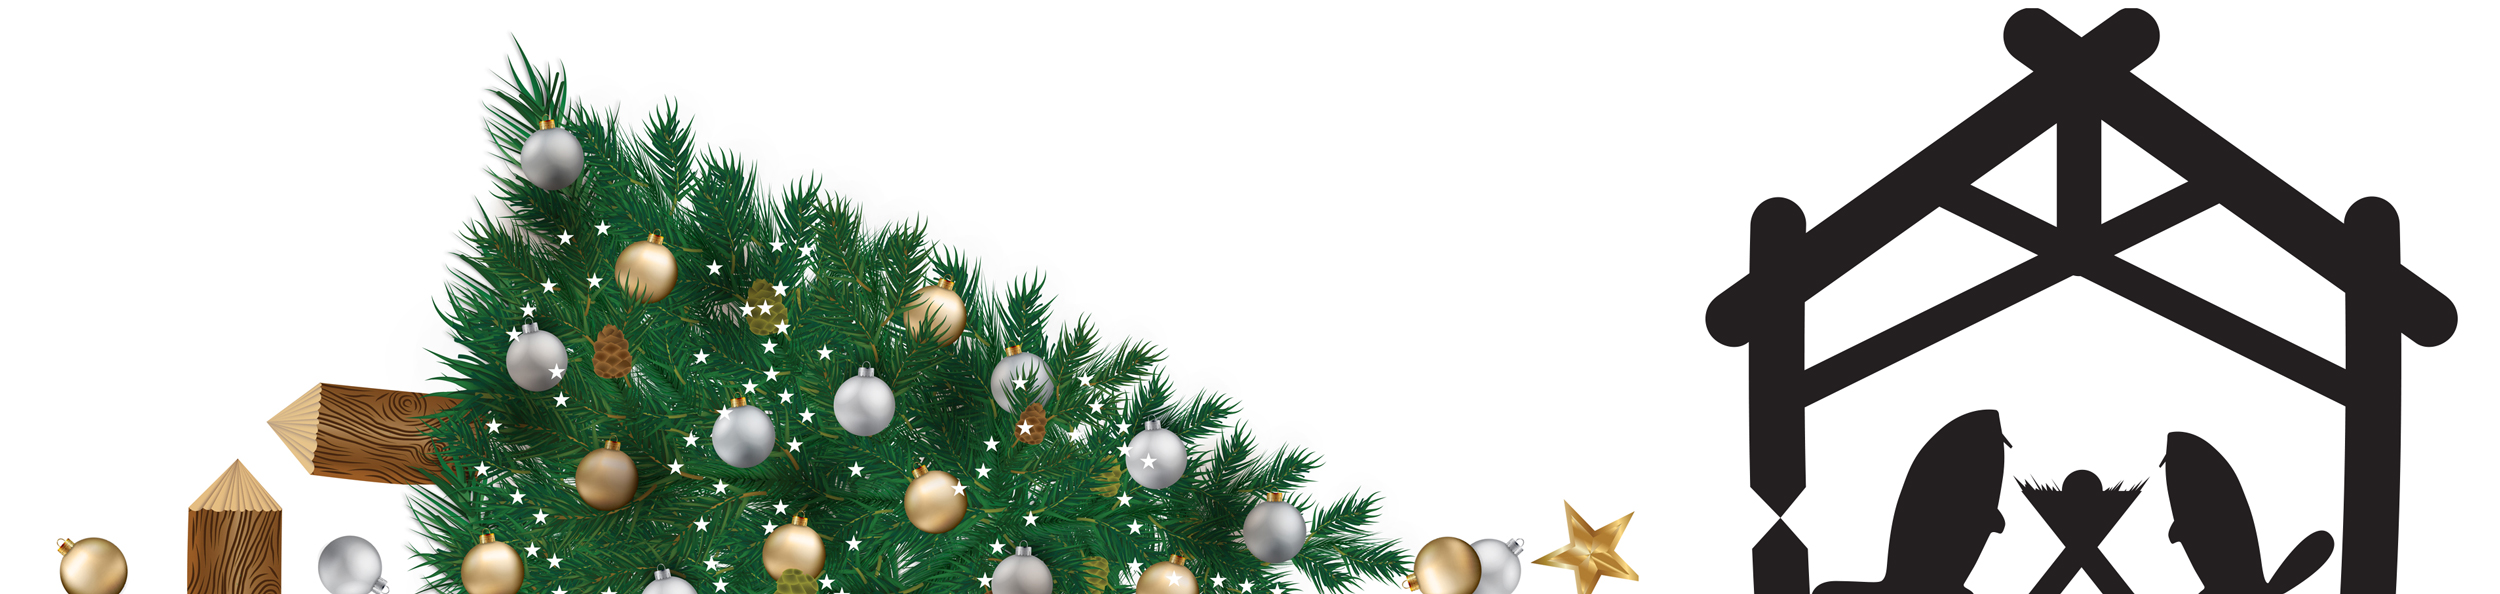 Kerstboom-gevallen_photoshop_Website_2.jpg